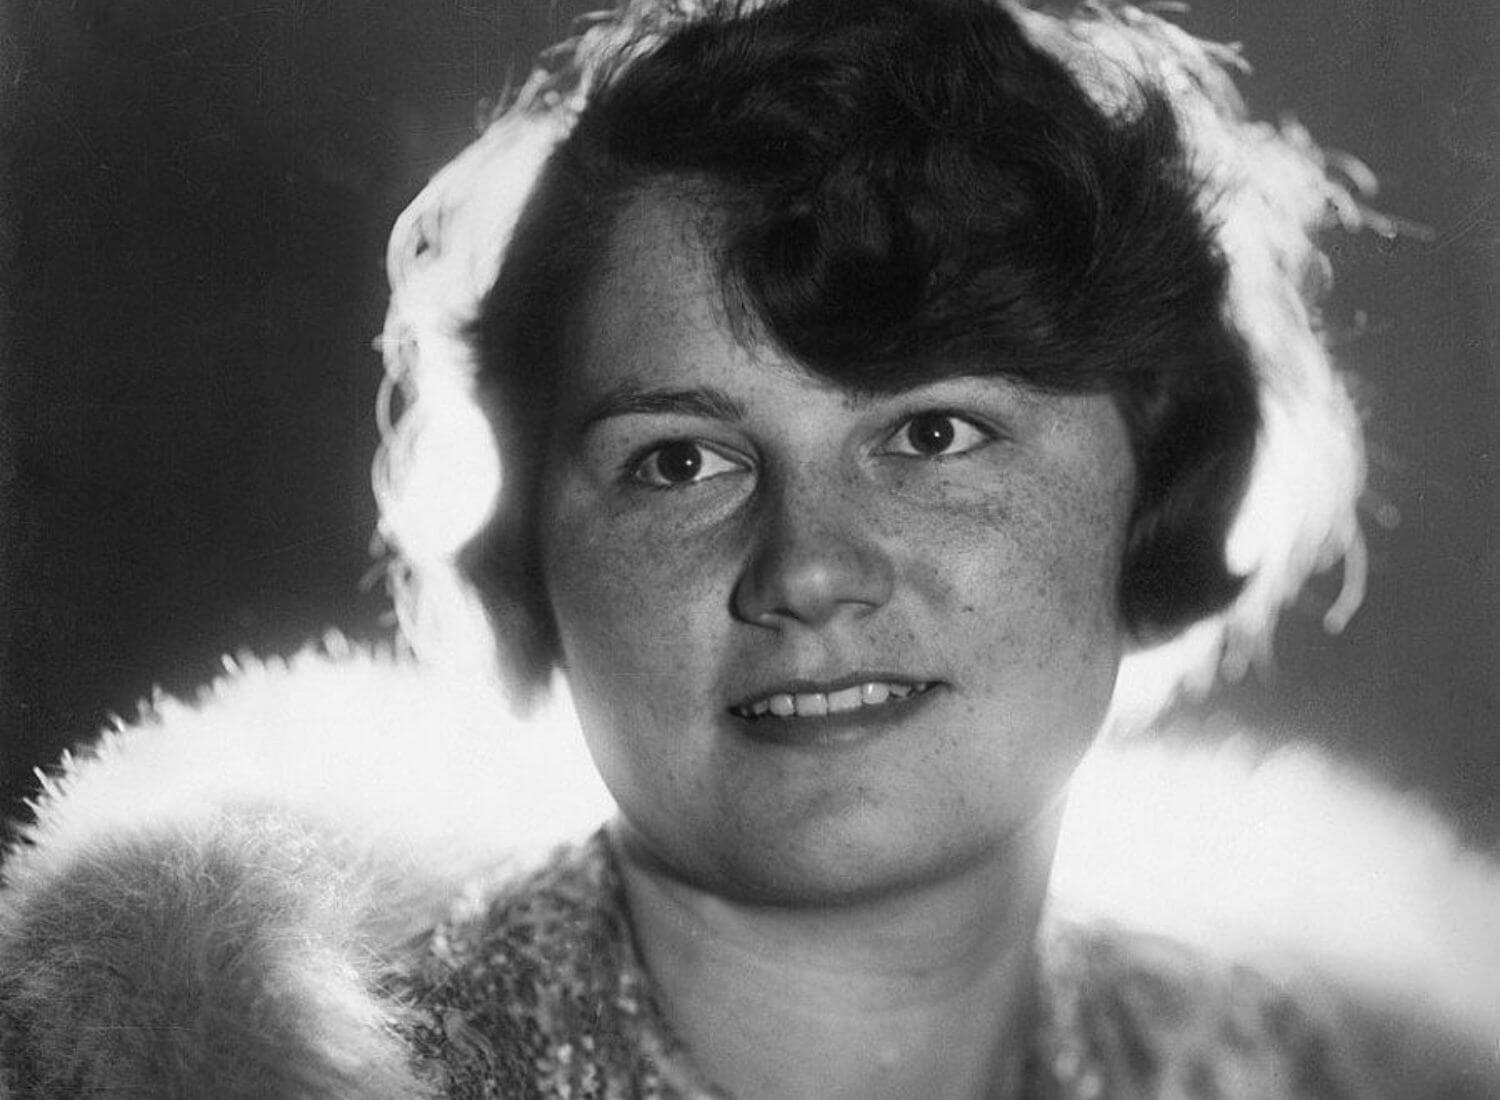 The Mysterious Death Of Geli Raubal: Hitler's Niece And Lover